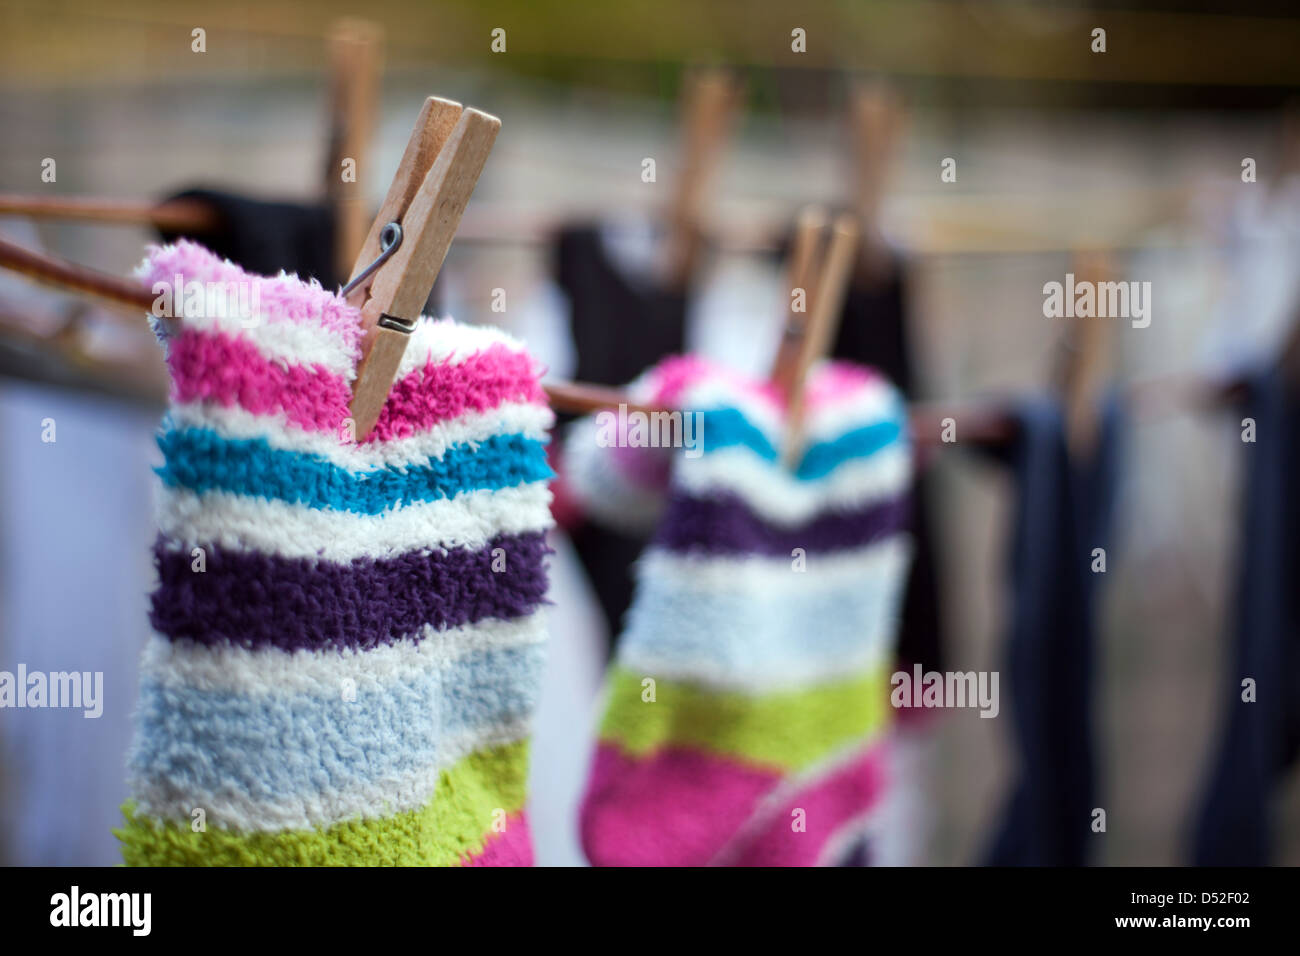 Colourful woolly socks pegged on to washing line - Stock Image